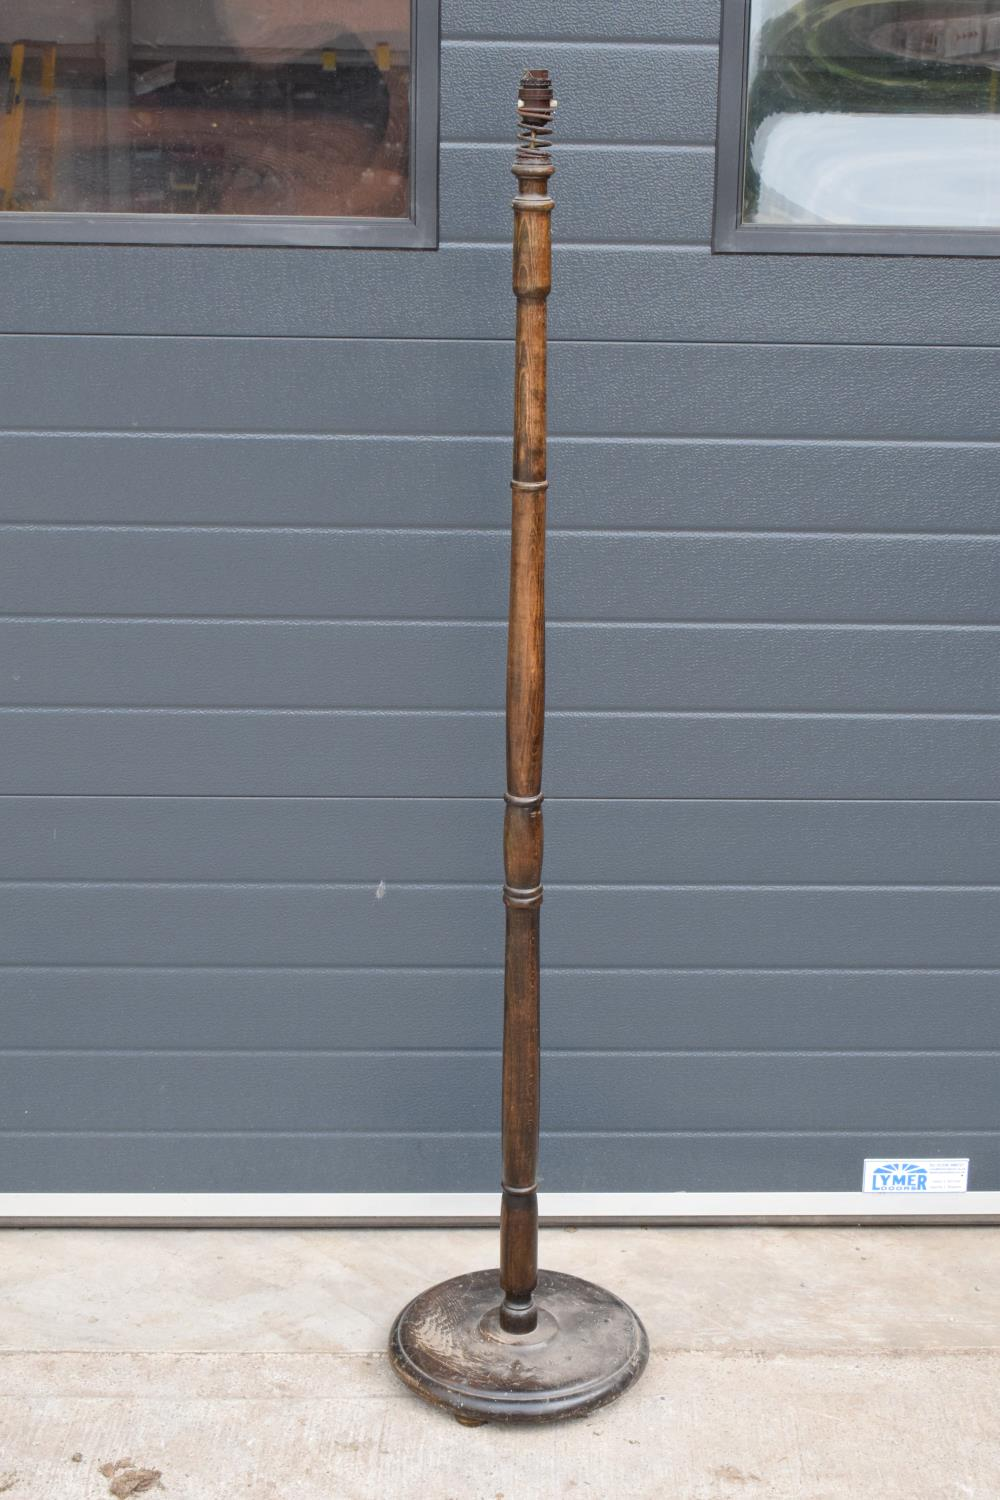 1930s free standing standard lampbase. 159cm tall. Untested. In good functional condition though